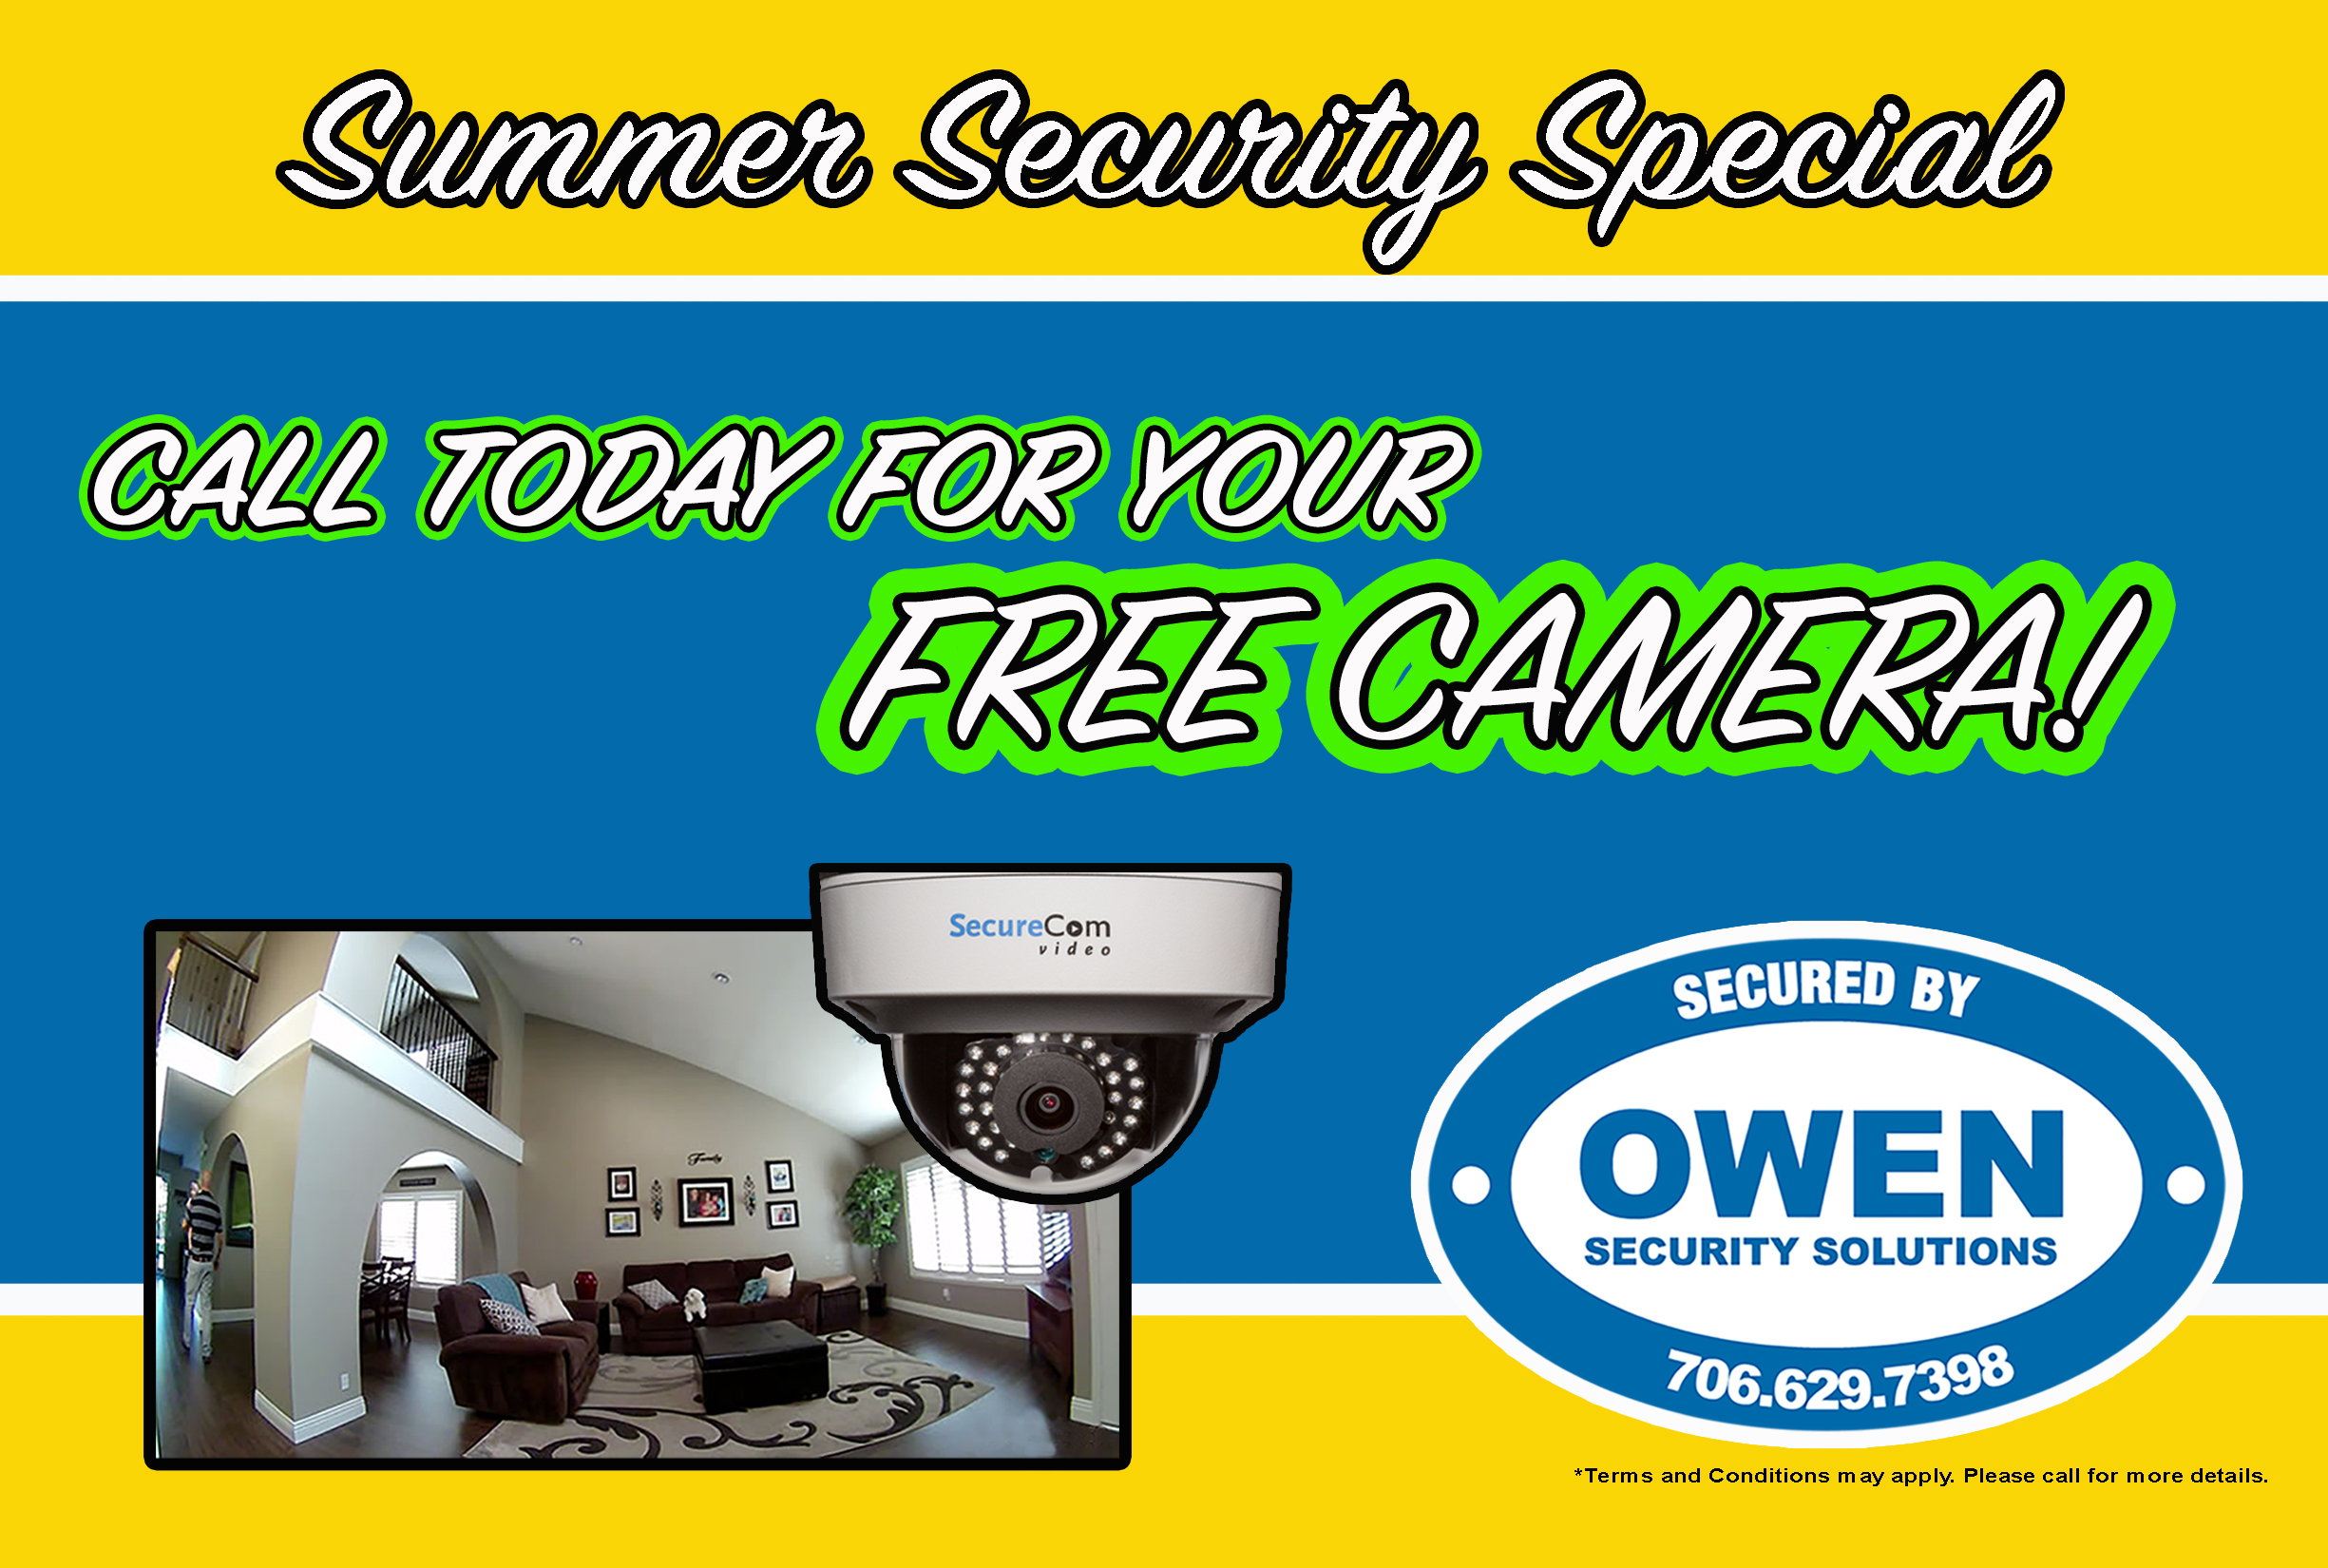 Summer Security Special - Call Today for Your FREE Camera! Secured by Owen Security Solutions - 706-629-7398